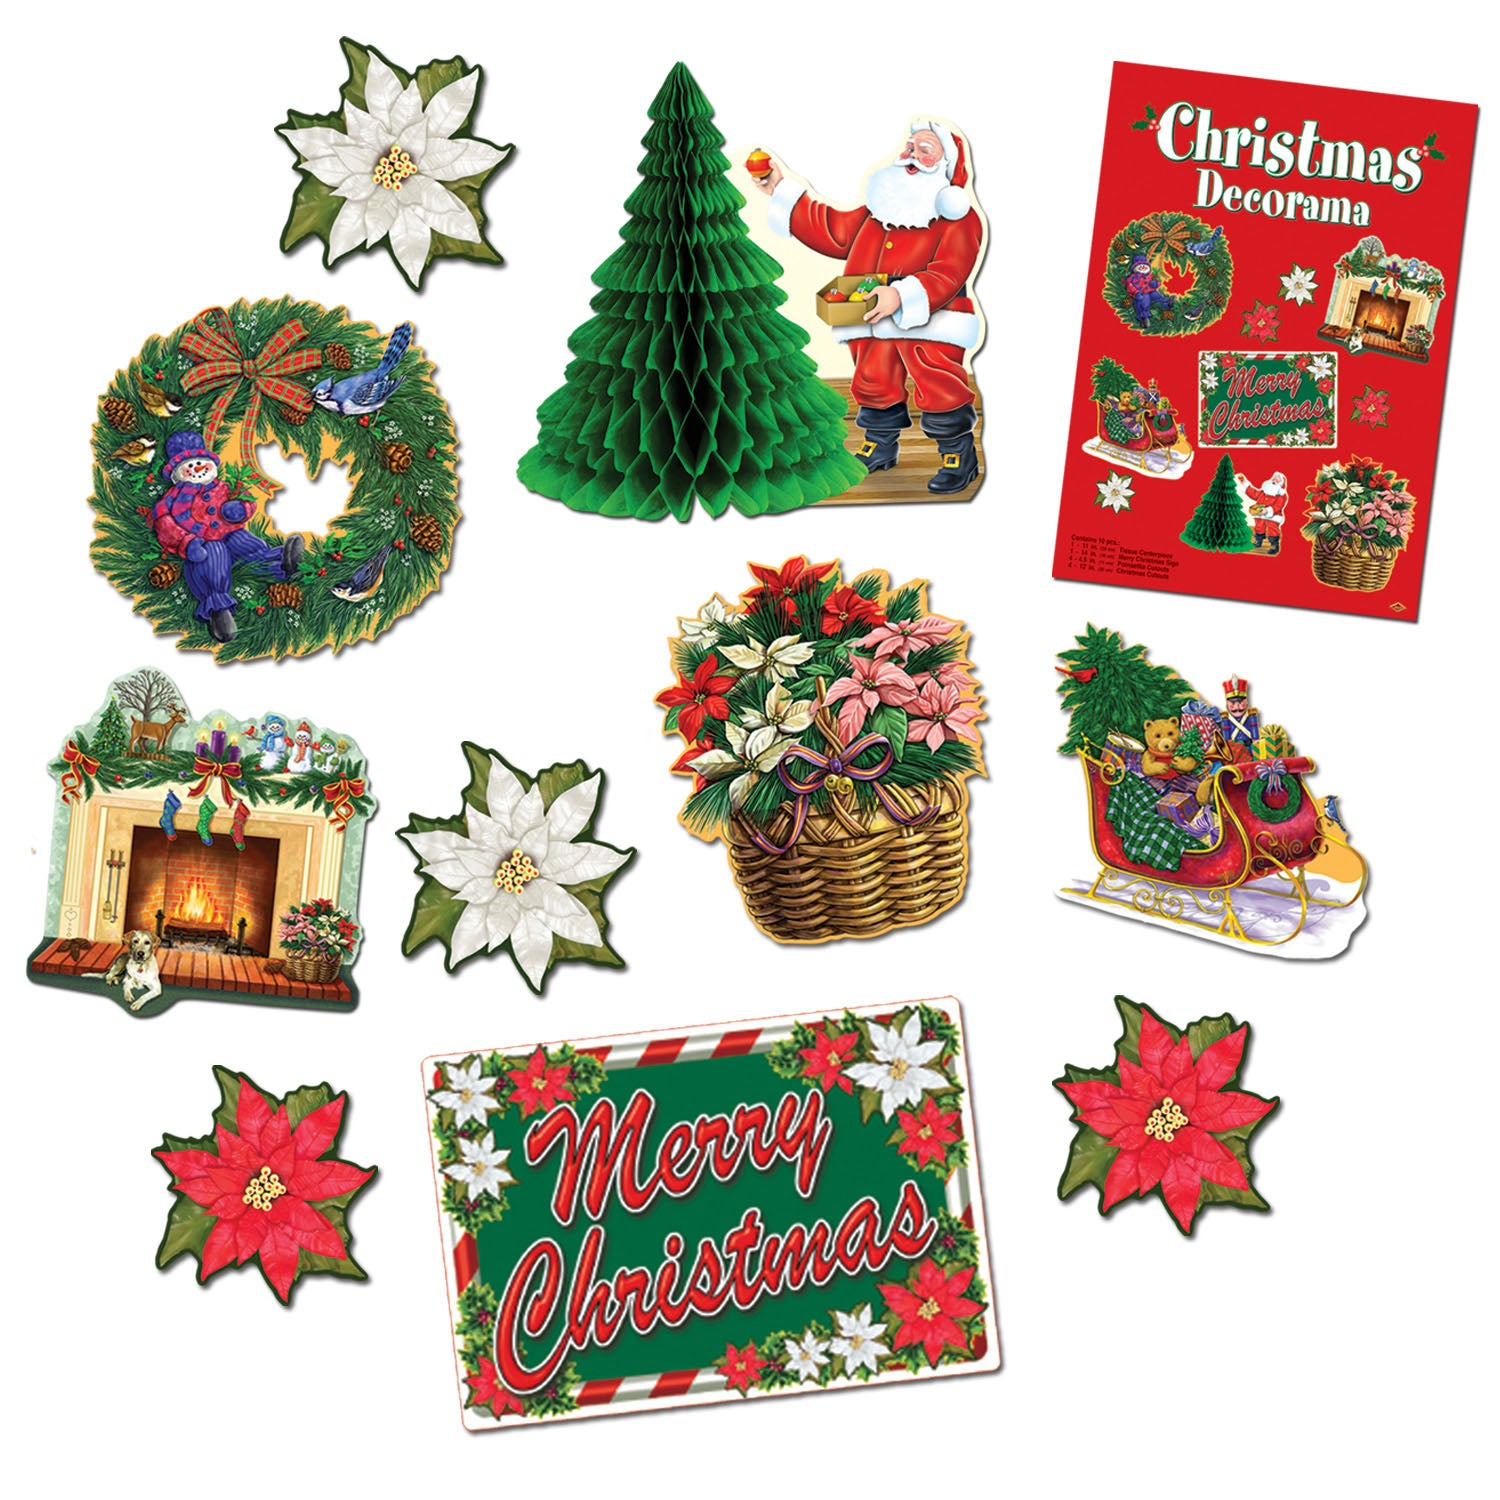 Christmas Decorama by Beistle - Winter and Christmas Theme Decorations